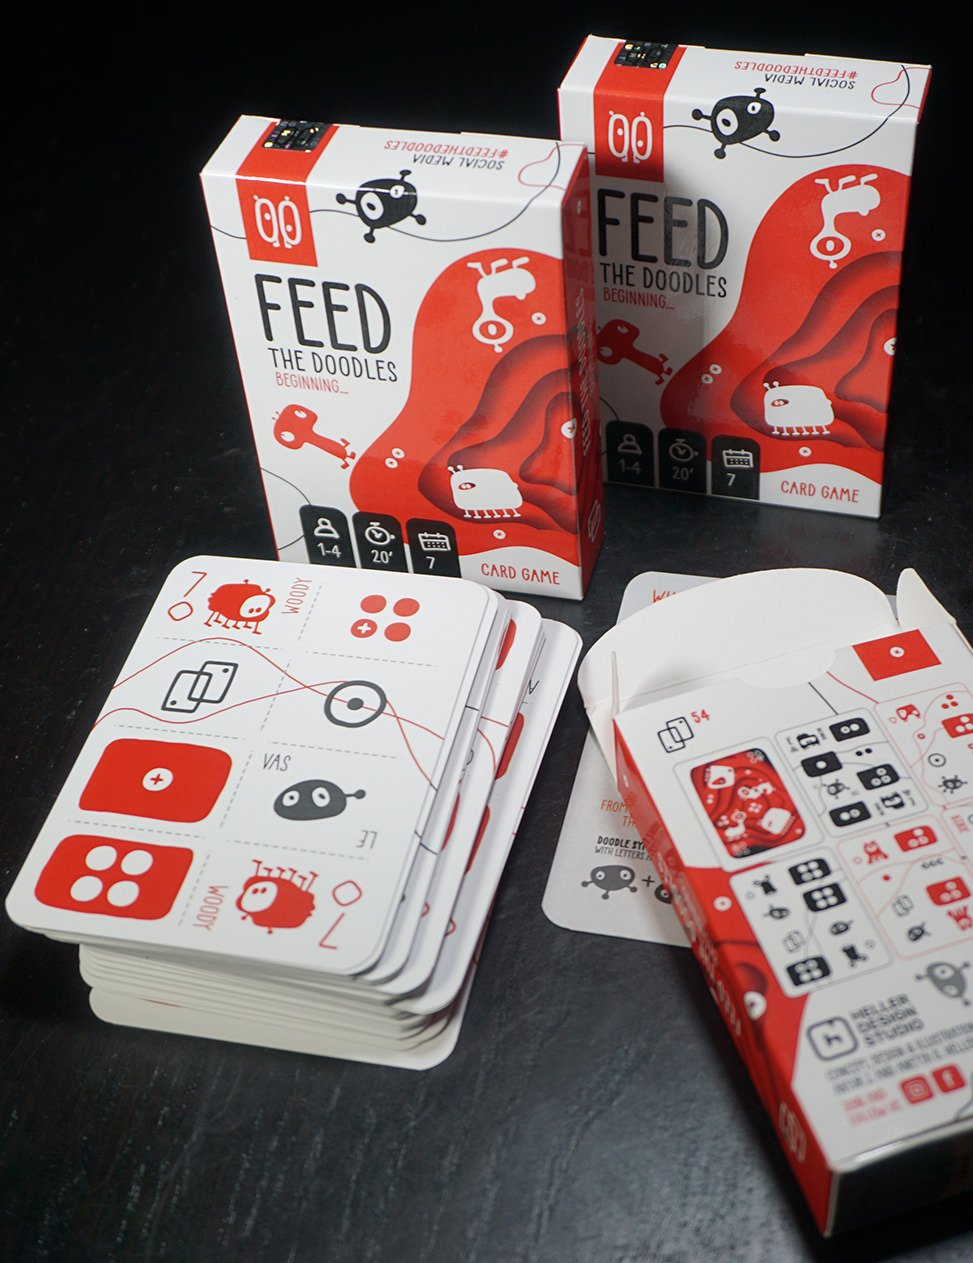 info-box-1-card-game-feed-the-doodles1-2020